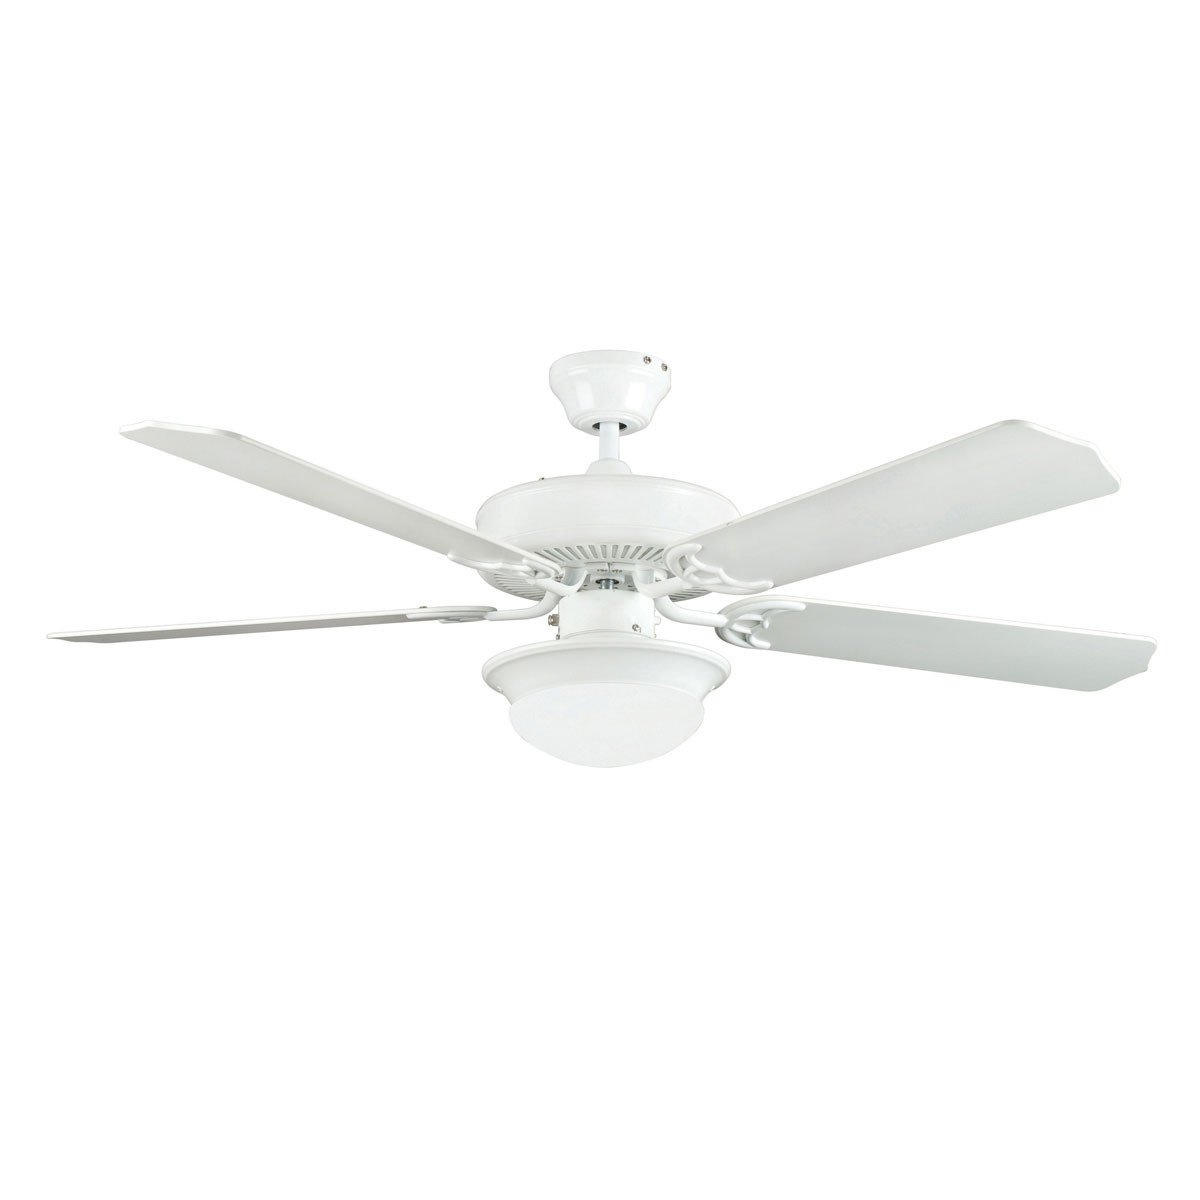 "Concord Fans 52"" Saturn Modern White Ceiling Fan with Light & Remote Control"